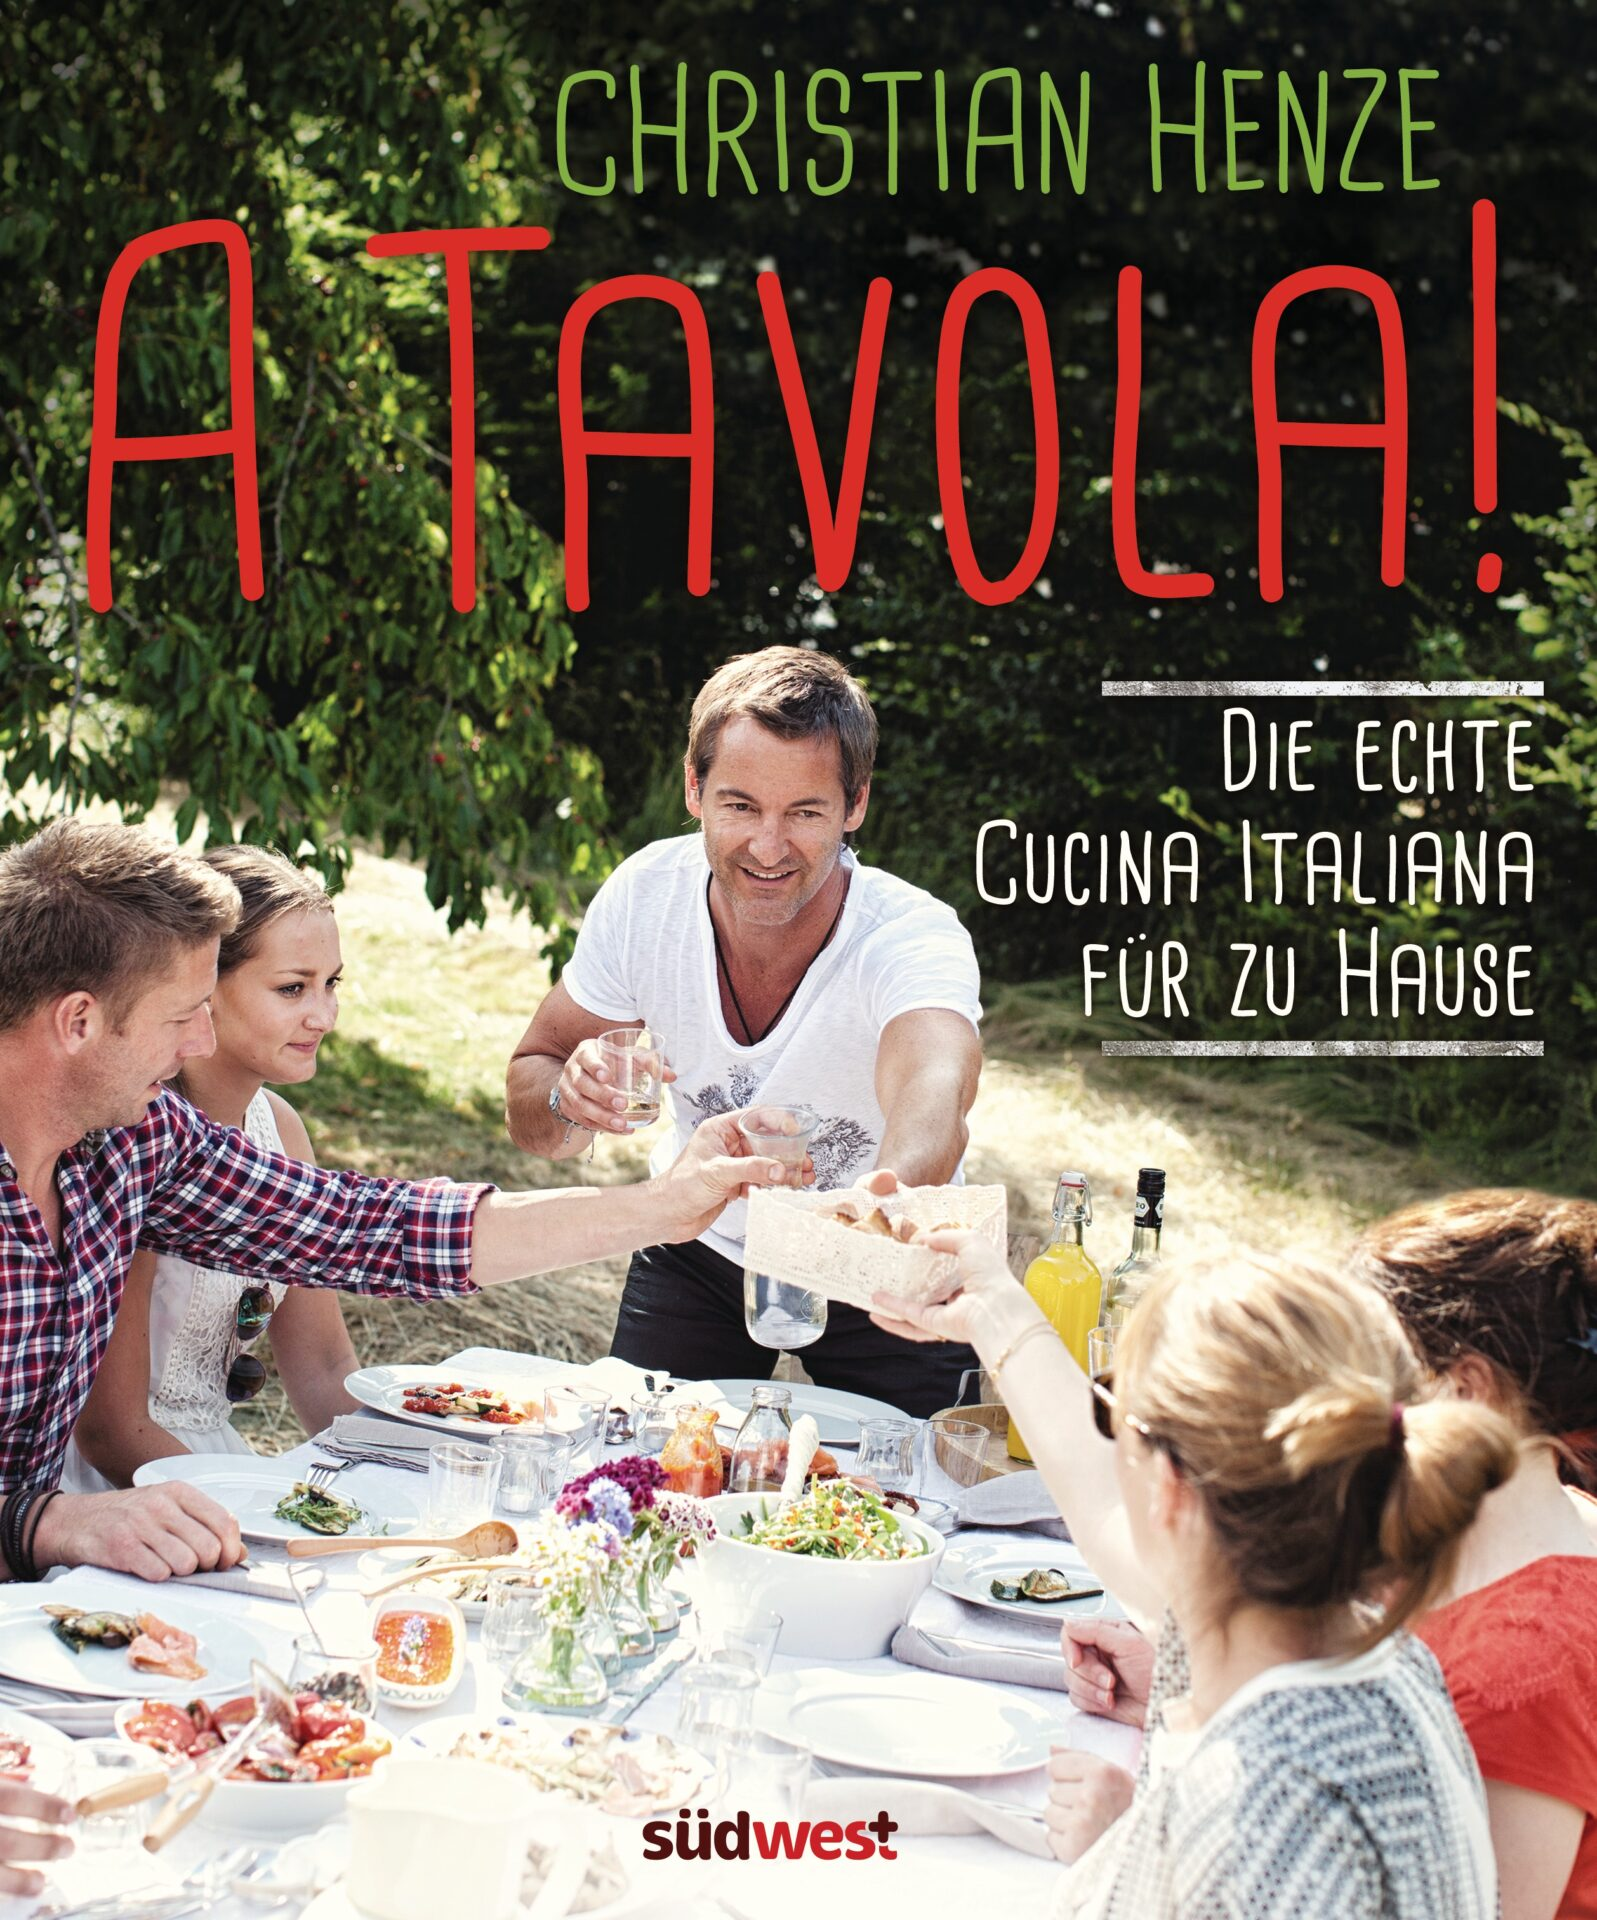 A Tavola! The real Cucina Italiana for the home of Christian Henze